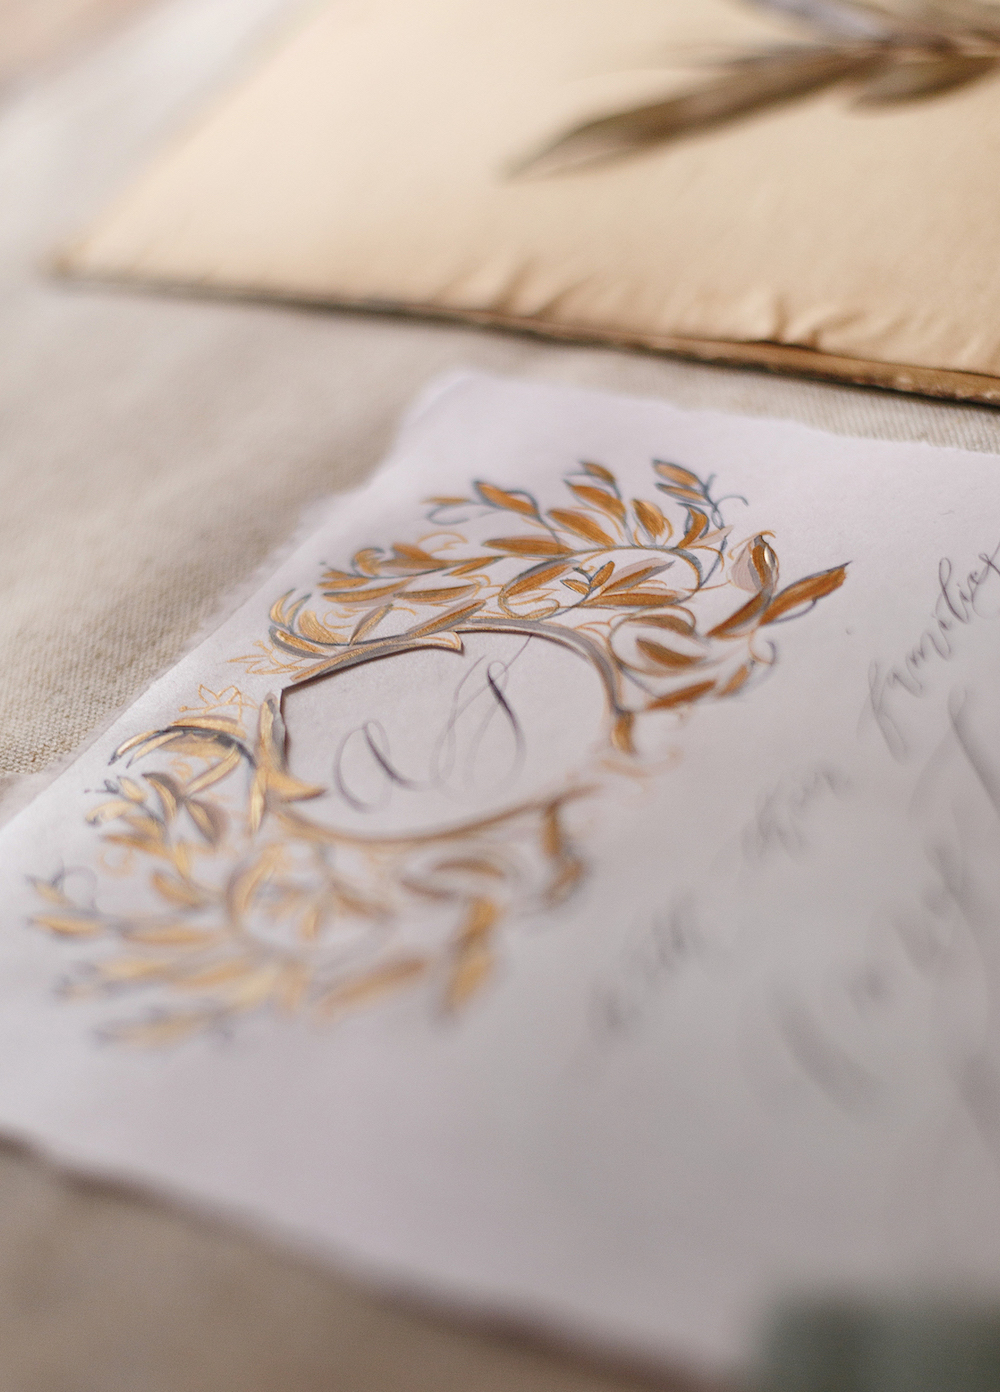 Cliveden House Wedding showing invitations with crest design in gold